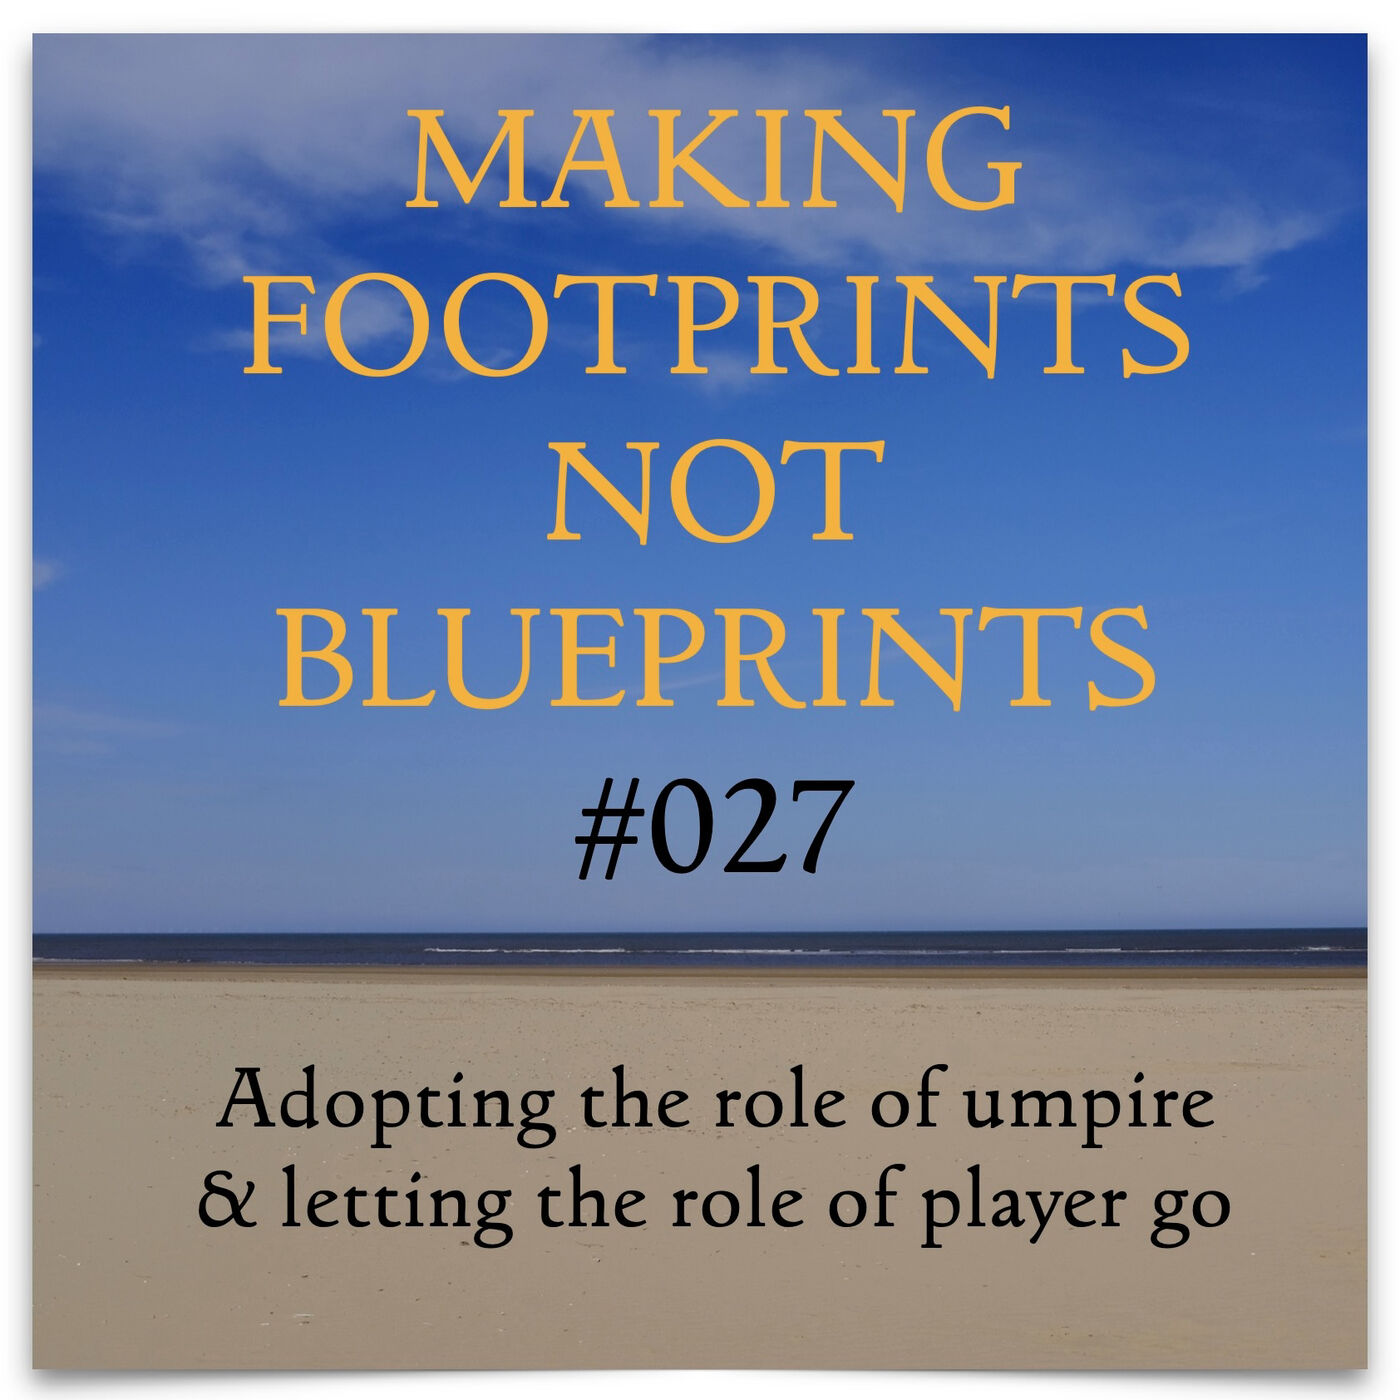 S01 #27 - Adopting the role of umpire and letting the role of player go (End of Series One)